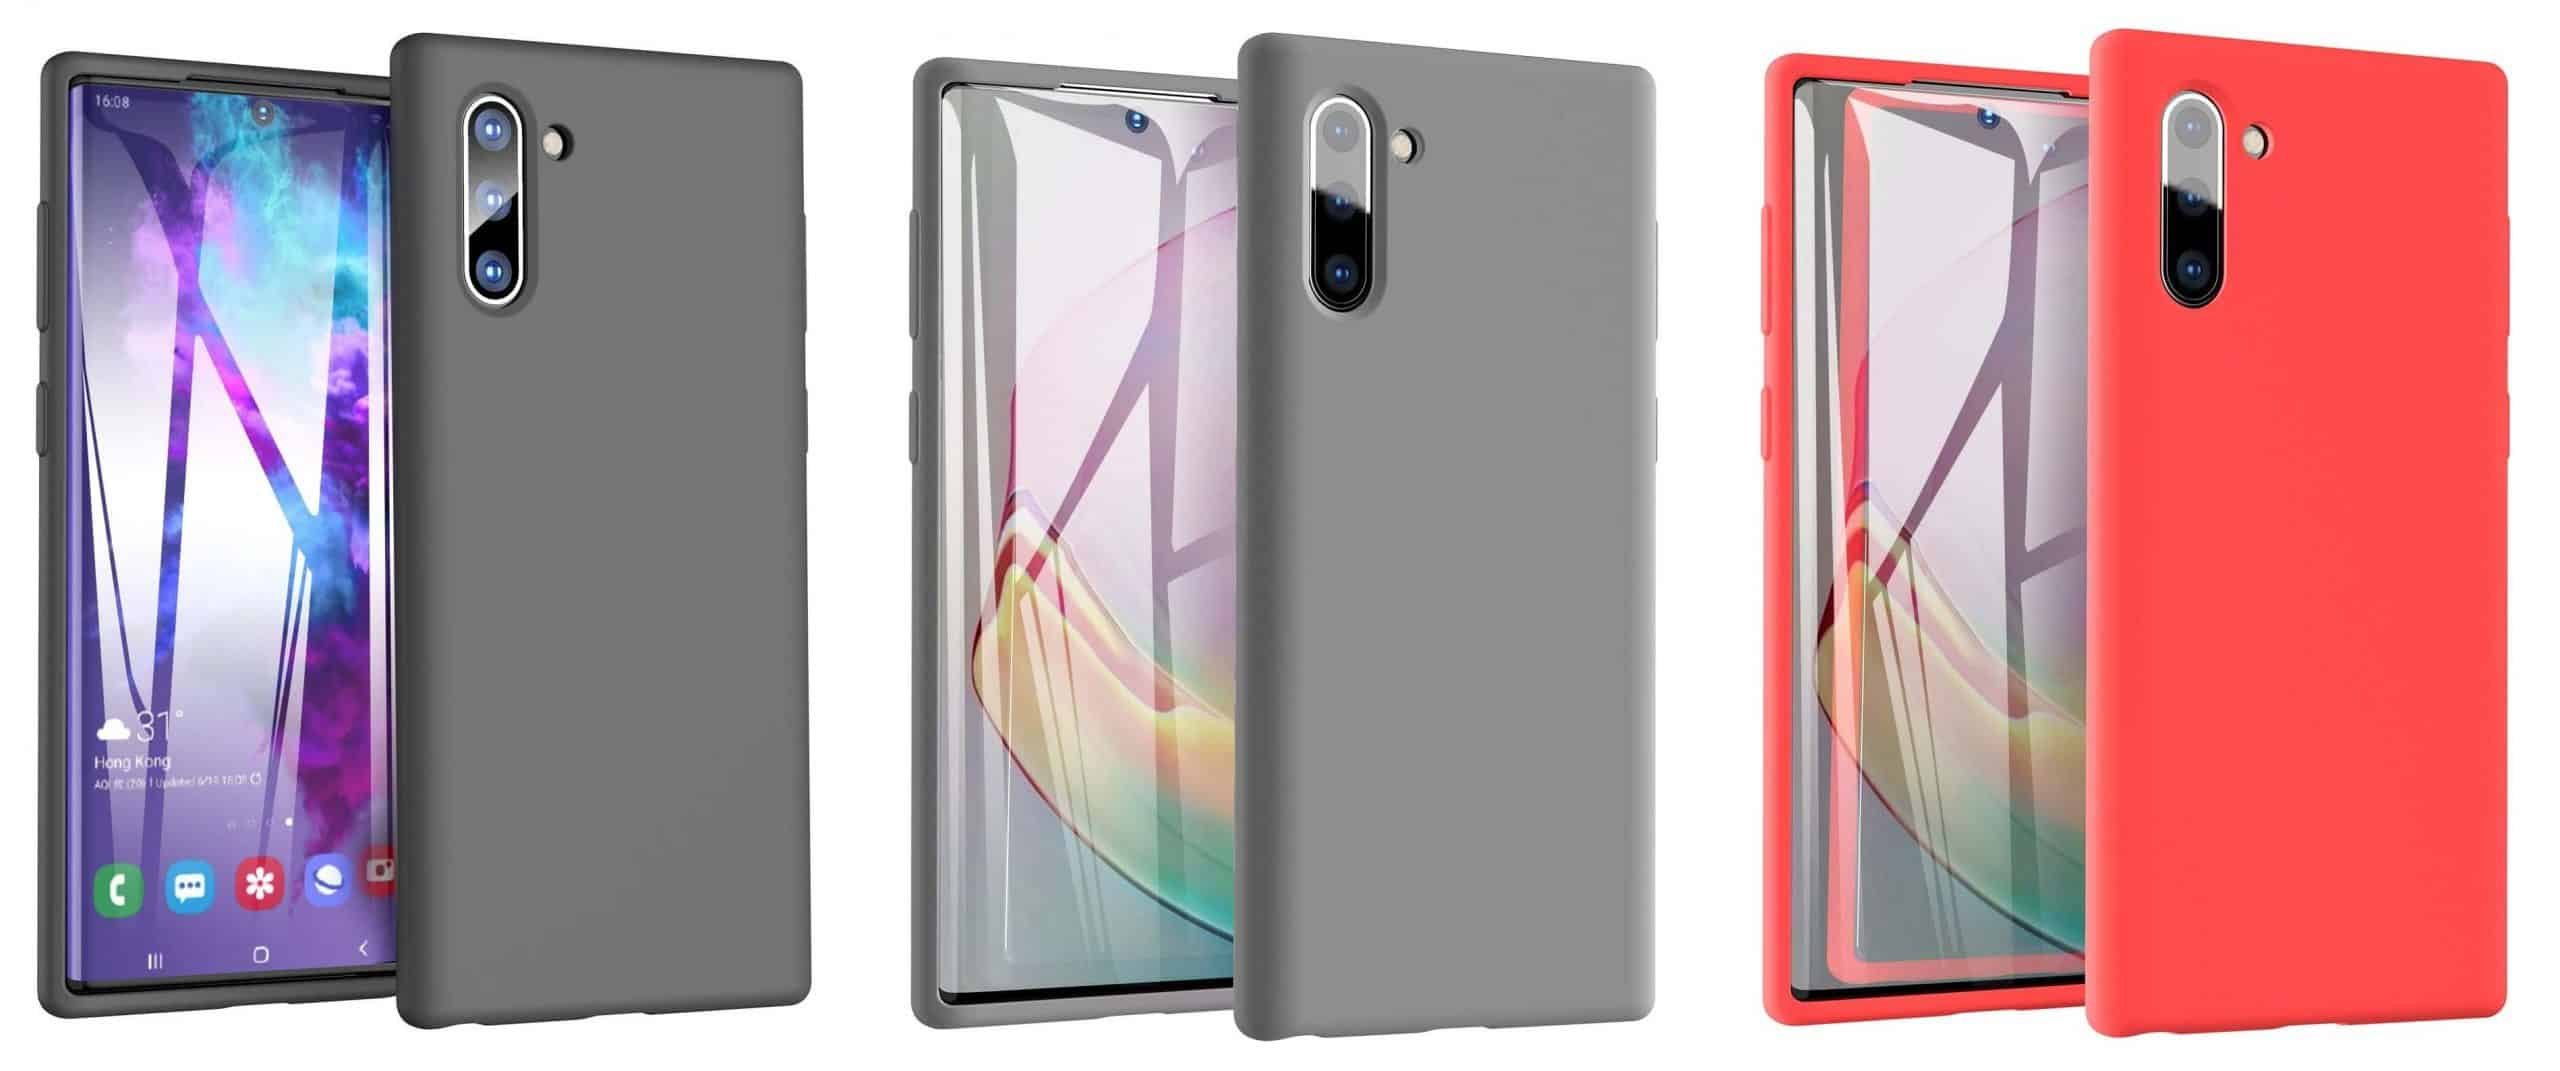 Tozo Ultra-thin Liquid Silicon Case for Samsung Galaxy Note 10 in Black, Gray, and Red.